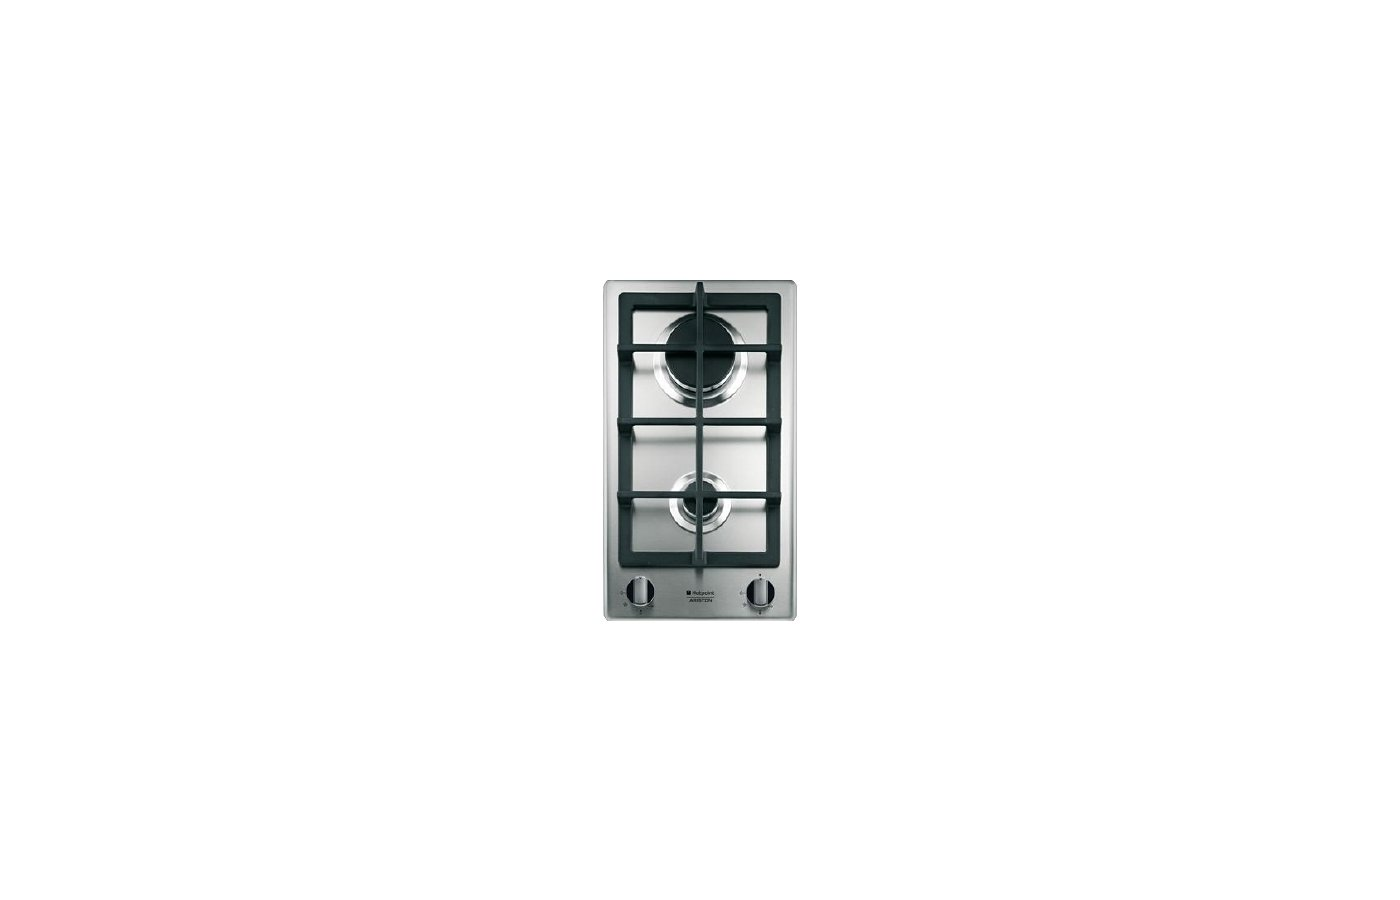 Варочная панель HOTPOINT-ARISTON 7HDK 20 GH RU/HA